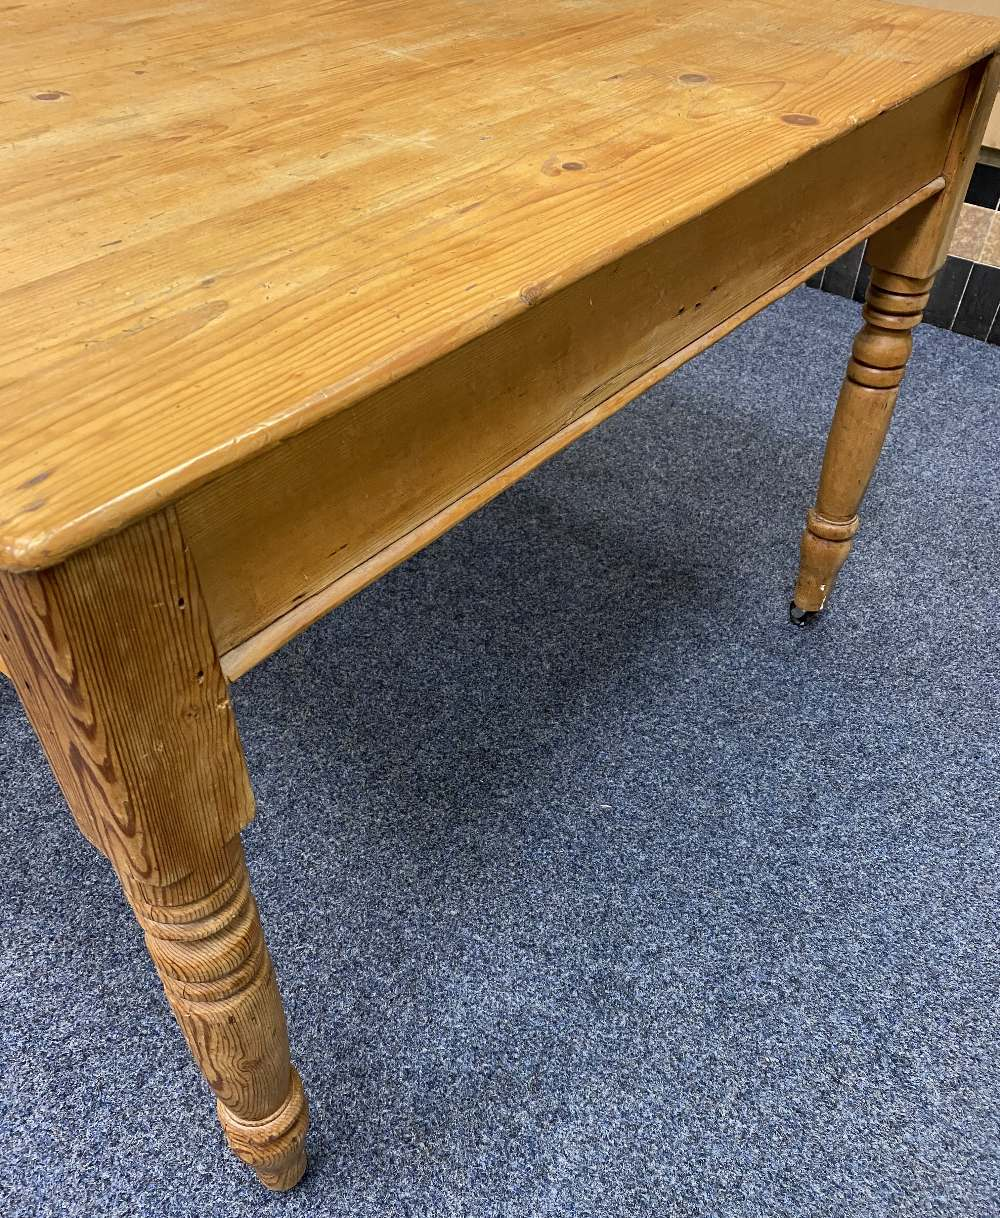 ANTIQUE STRIPPED PINE SINGLE DRAWER KITCHEN TABLE on turned and block supports with modern - Image 2 of 2